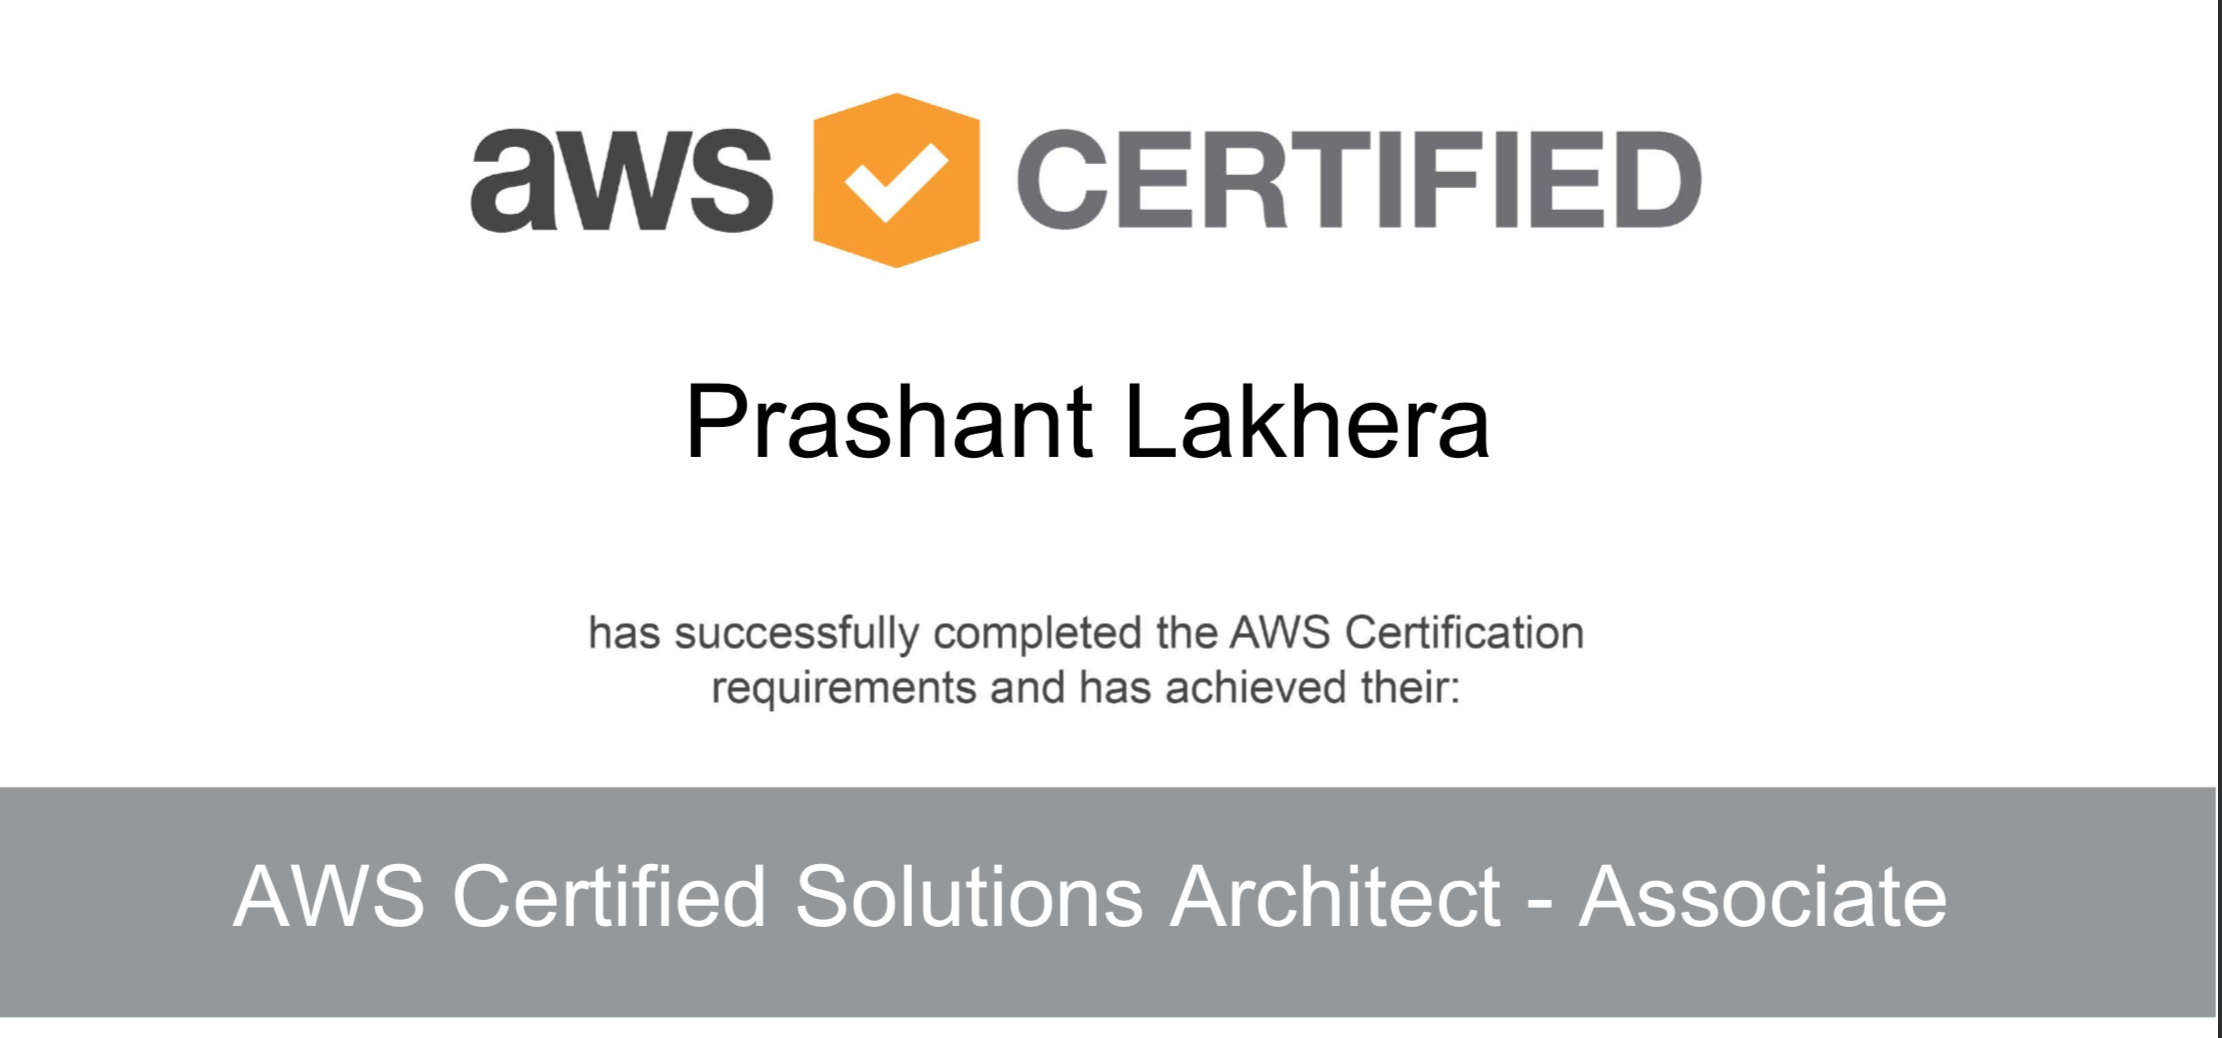 My Road To Aws Certified Solution Architect Prashant